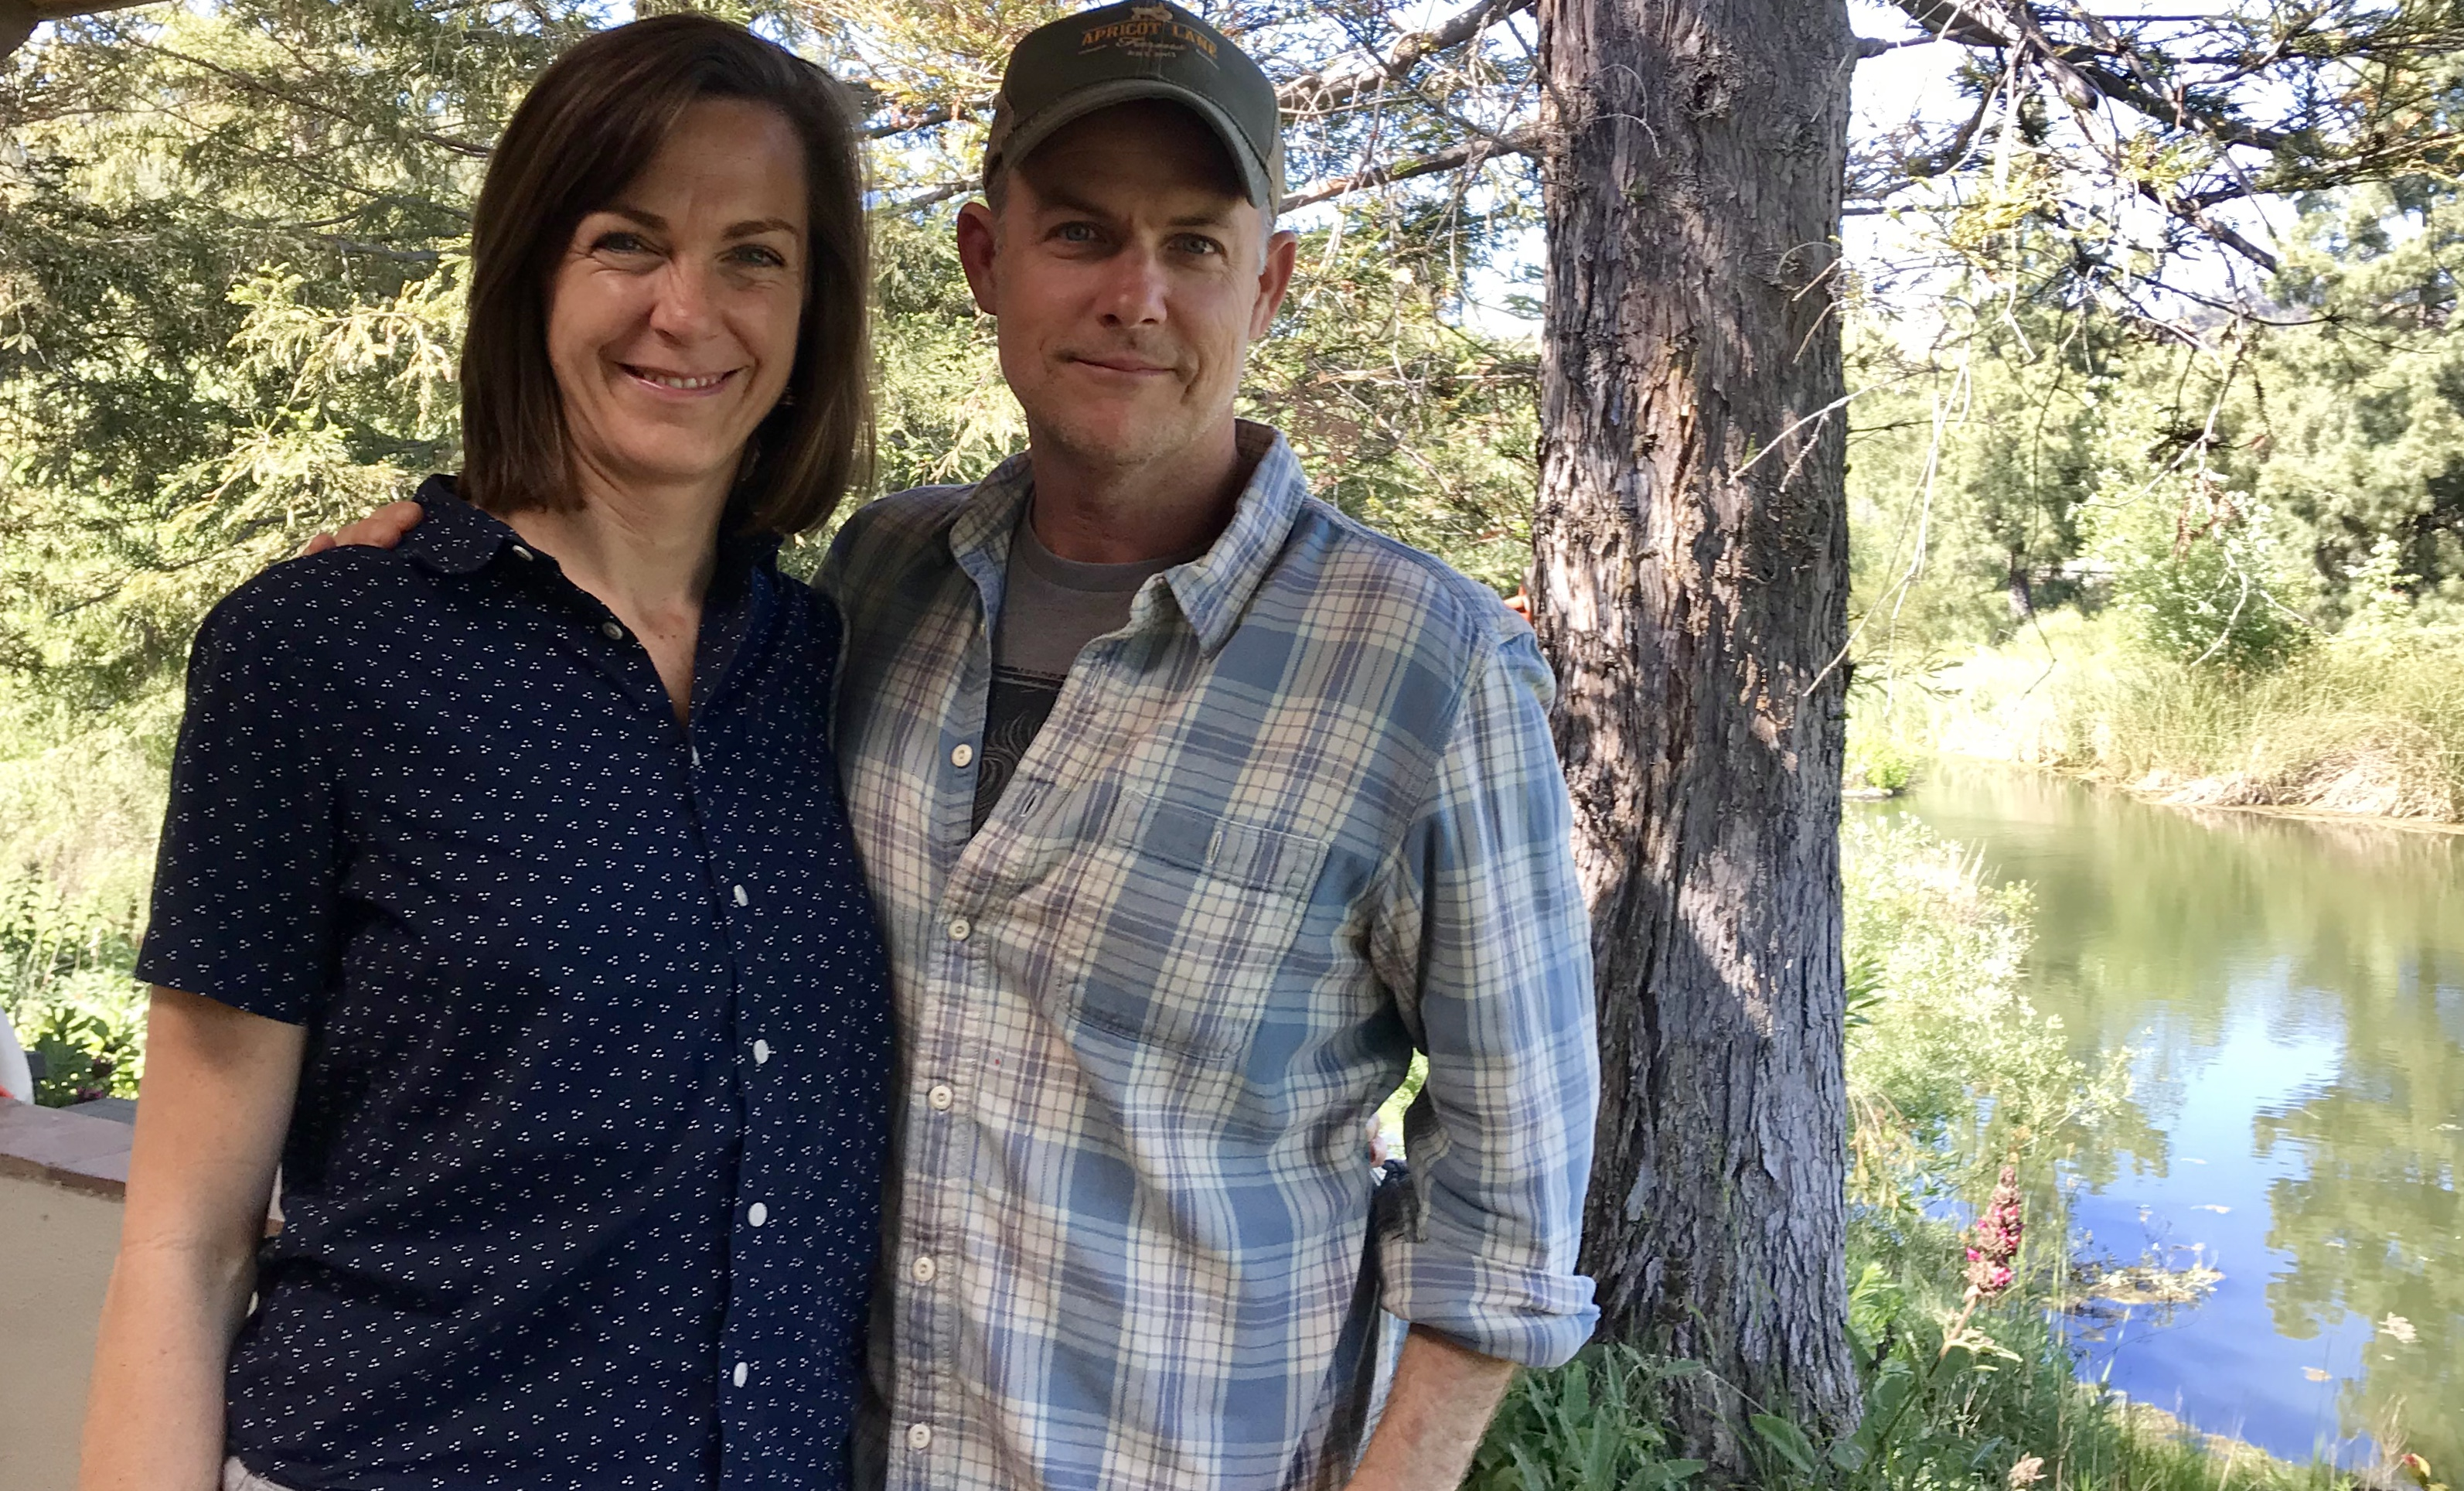 Why Breakout Doc The Biggest Little Farm Didn't Sell to